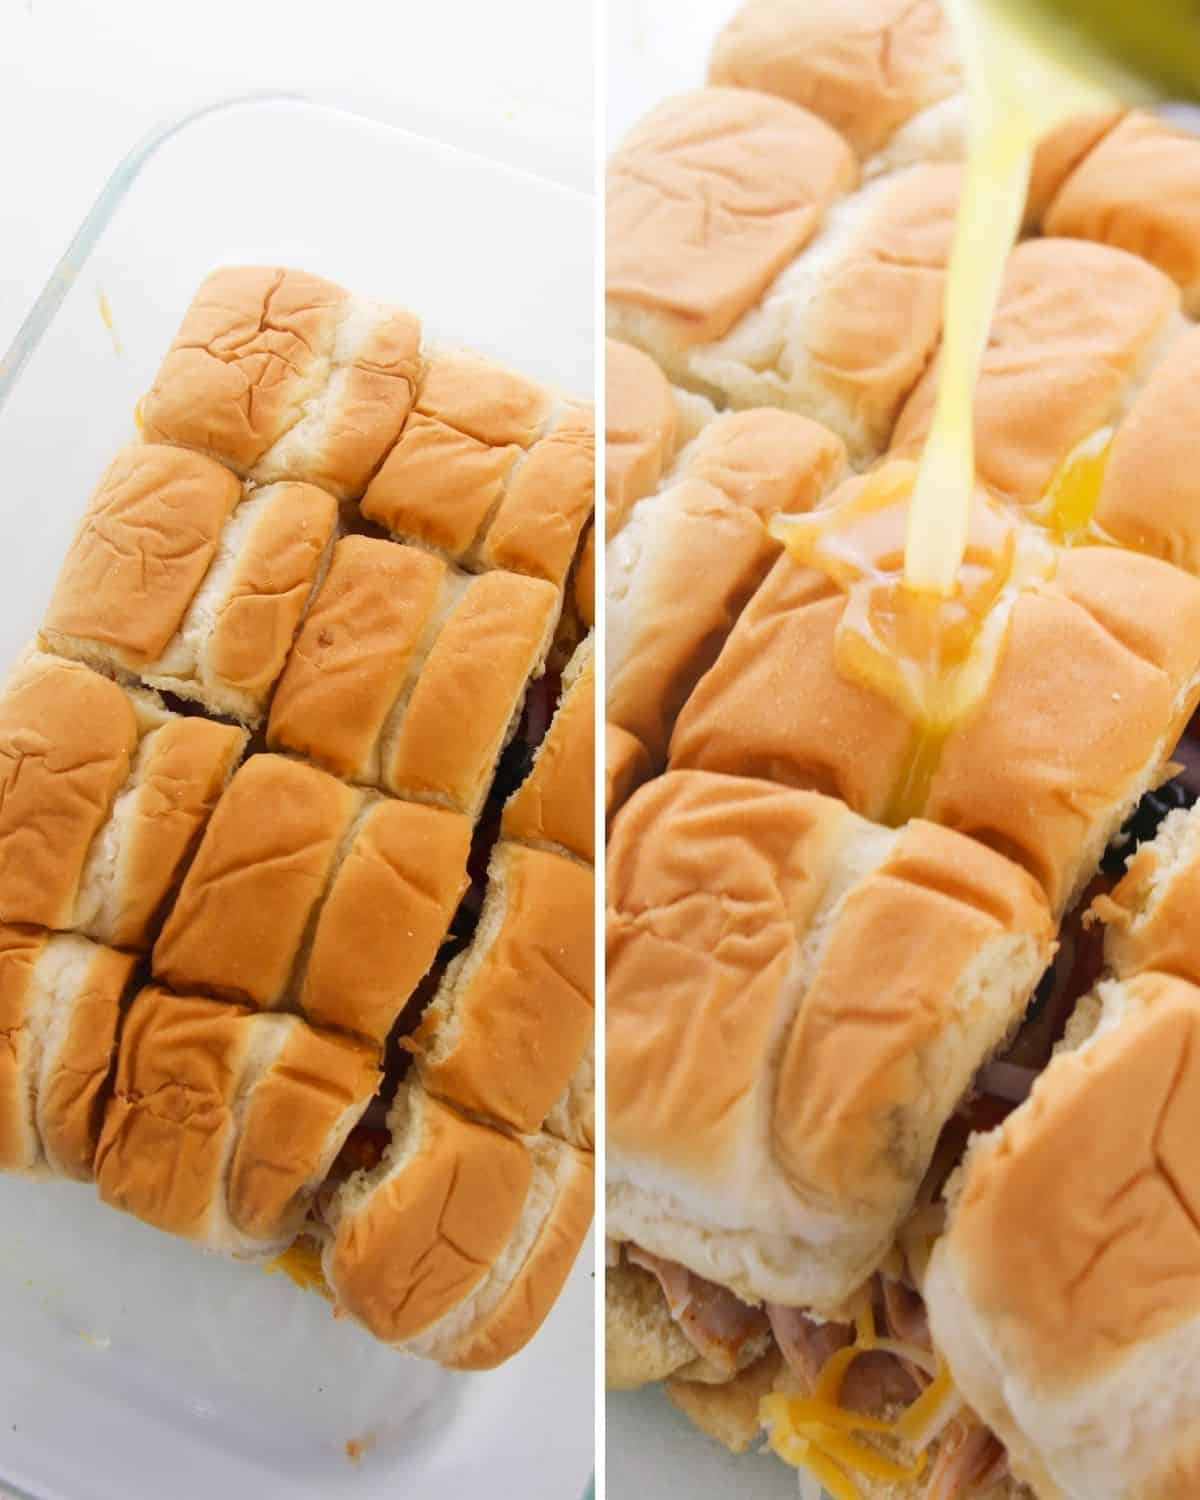 two photos, the first is Hawaiian sliders on a glass plate. The second photo is a stack of sliders with melted butter being poured over the bread.